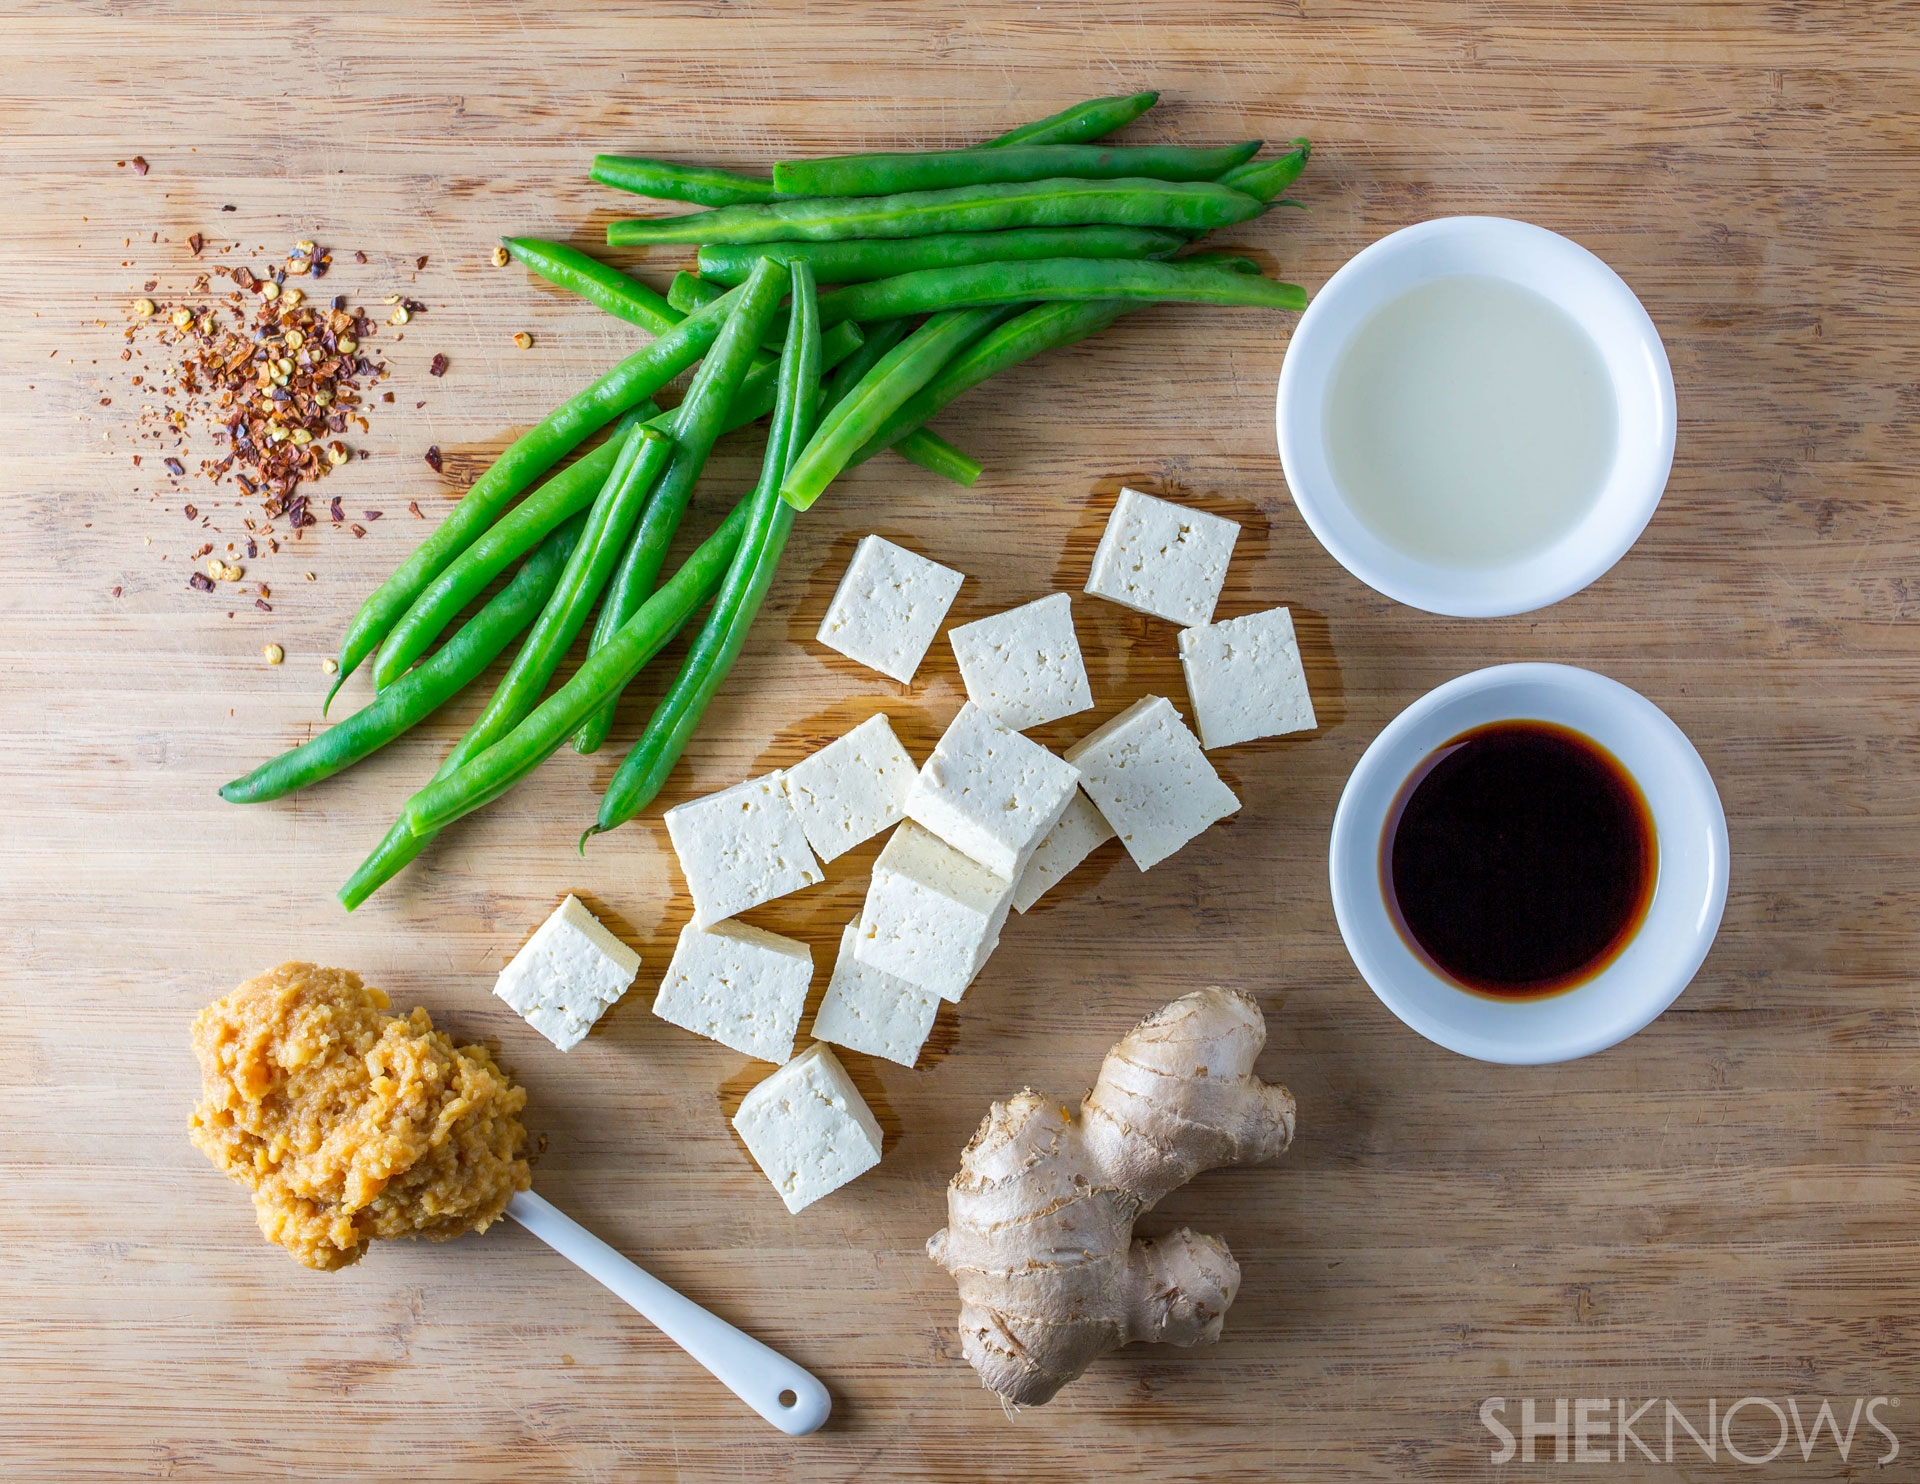 Miso-glazed tofu with spicy string beans: Ingredients